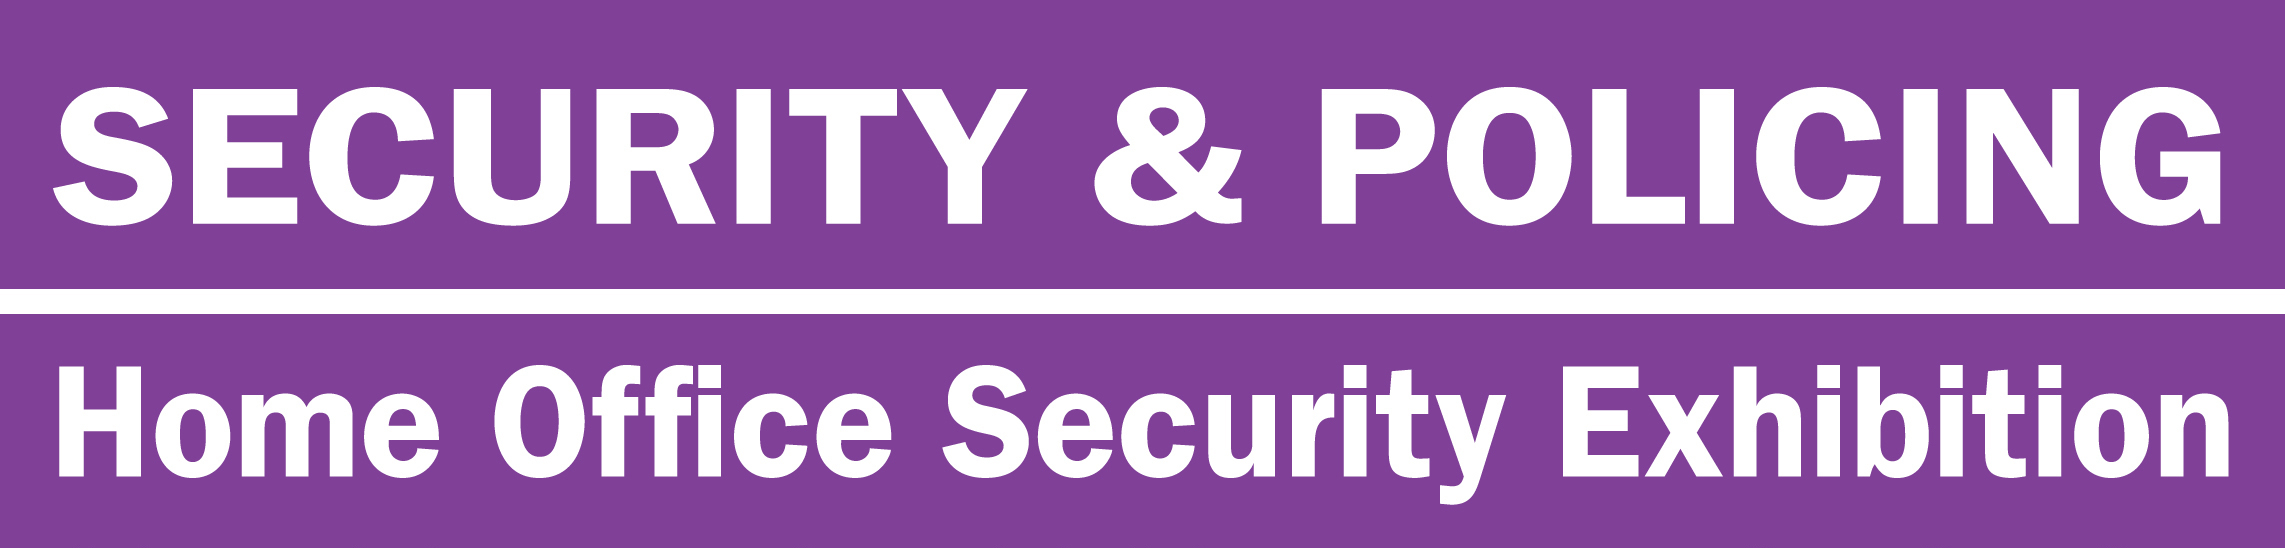 IPS expositor en Security and Policing 2019